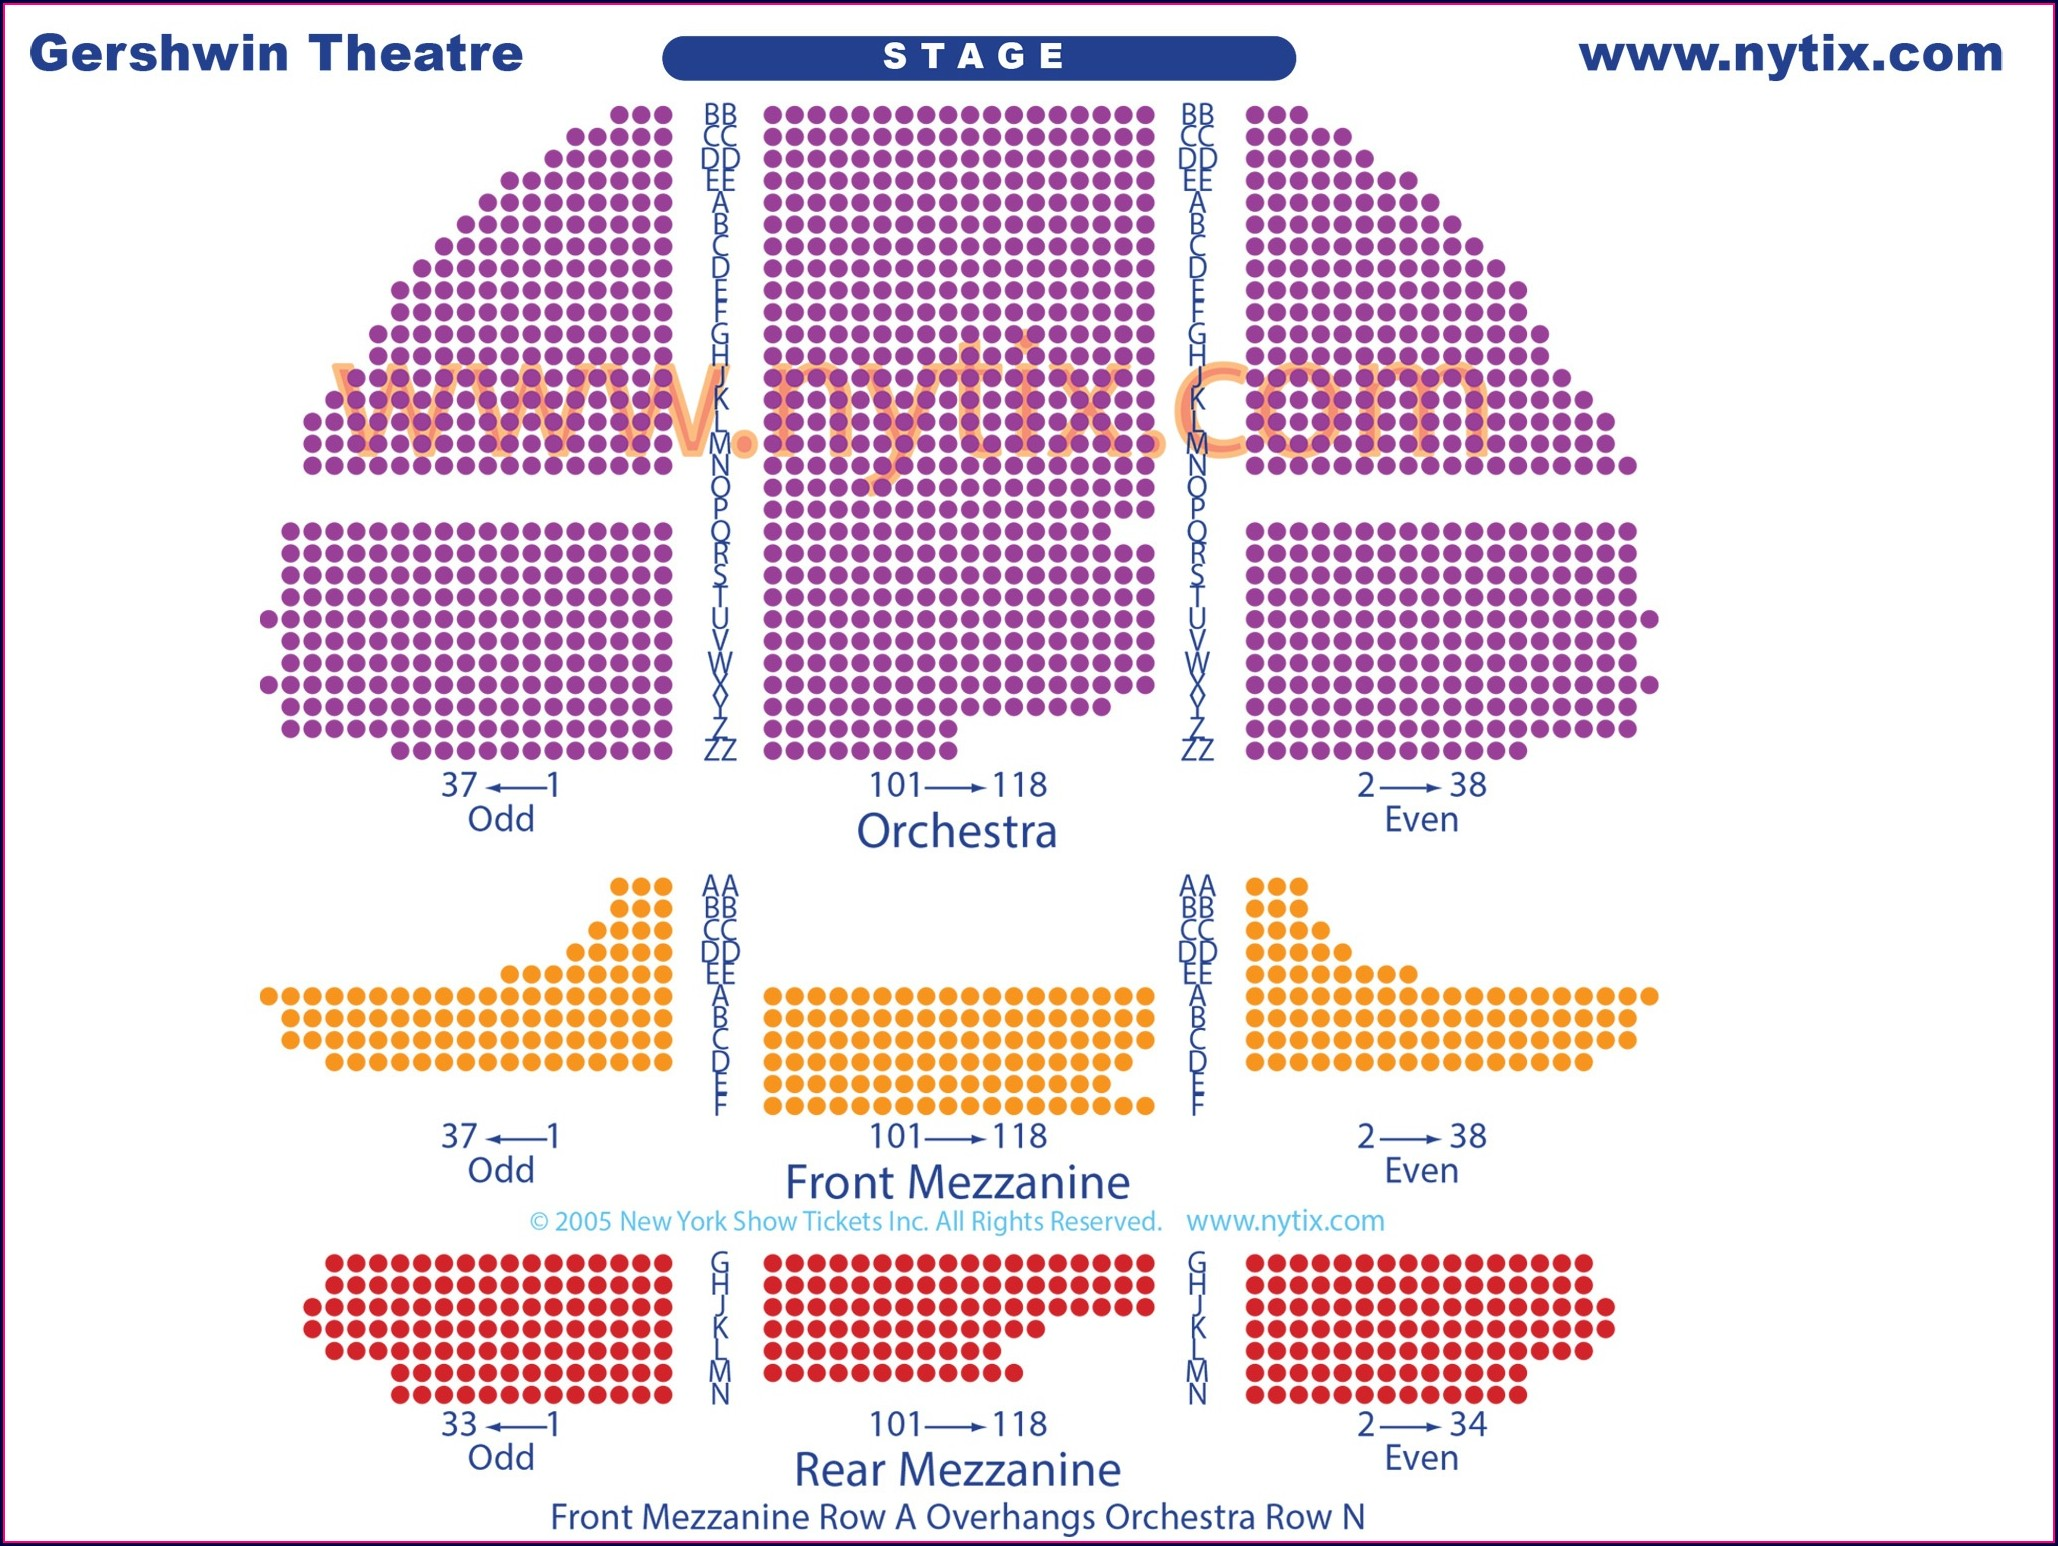 Gershwin Theater Seat Map